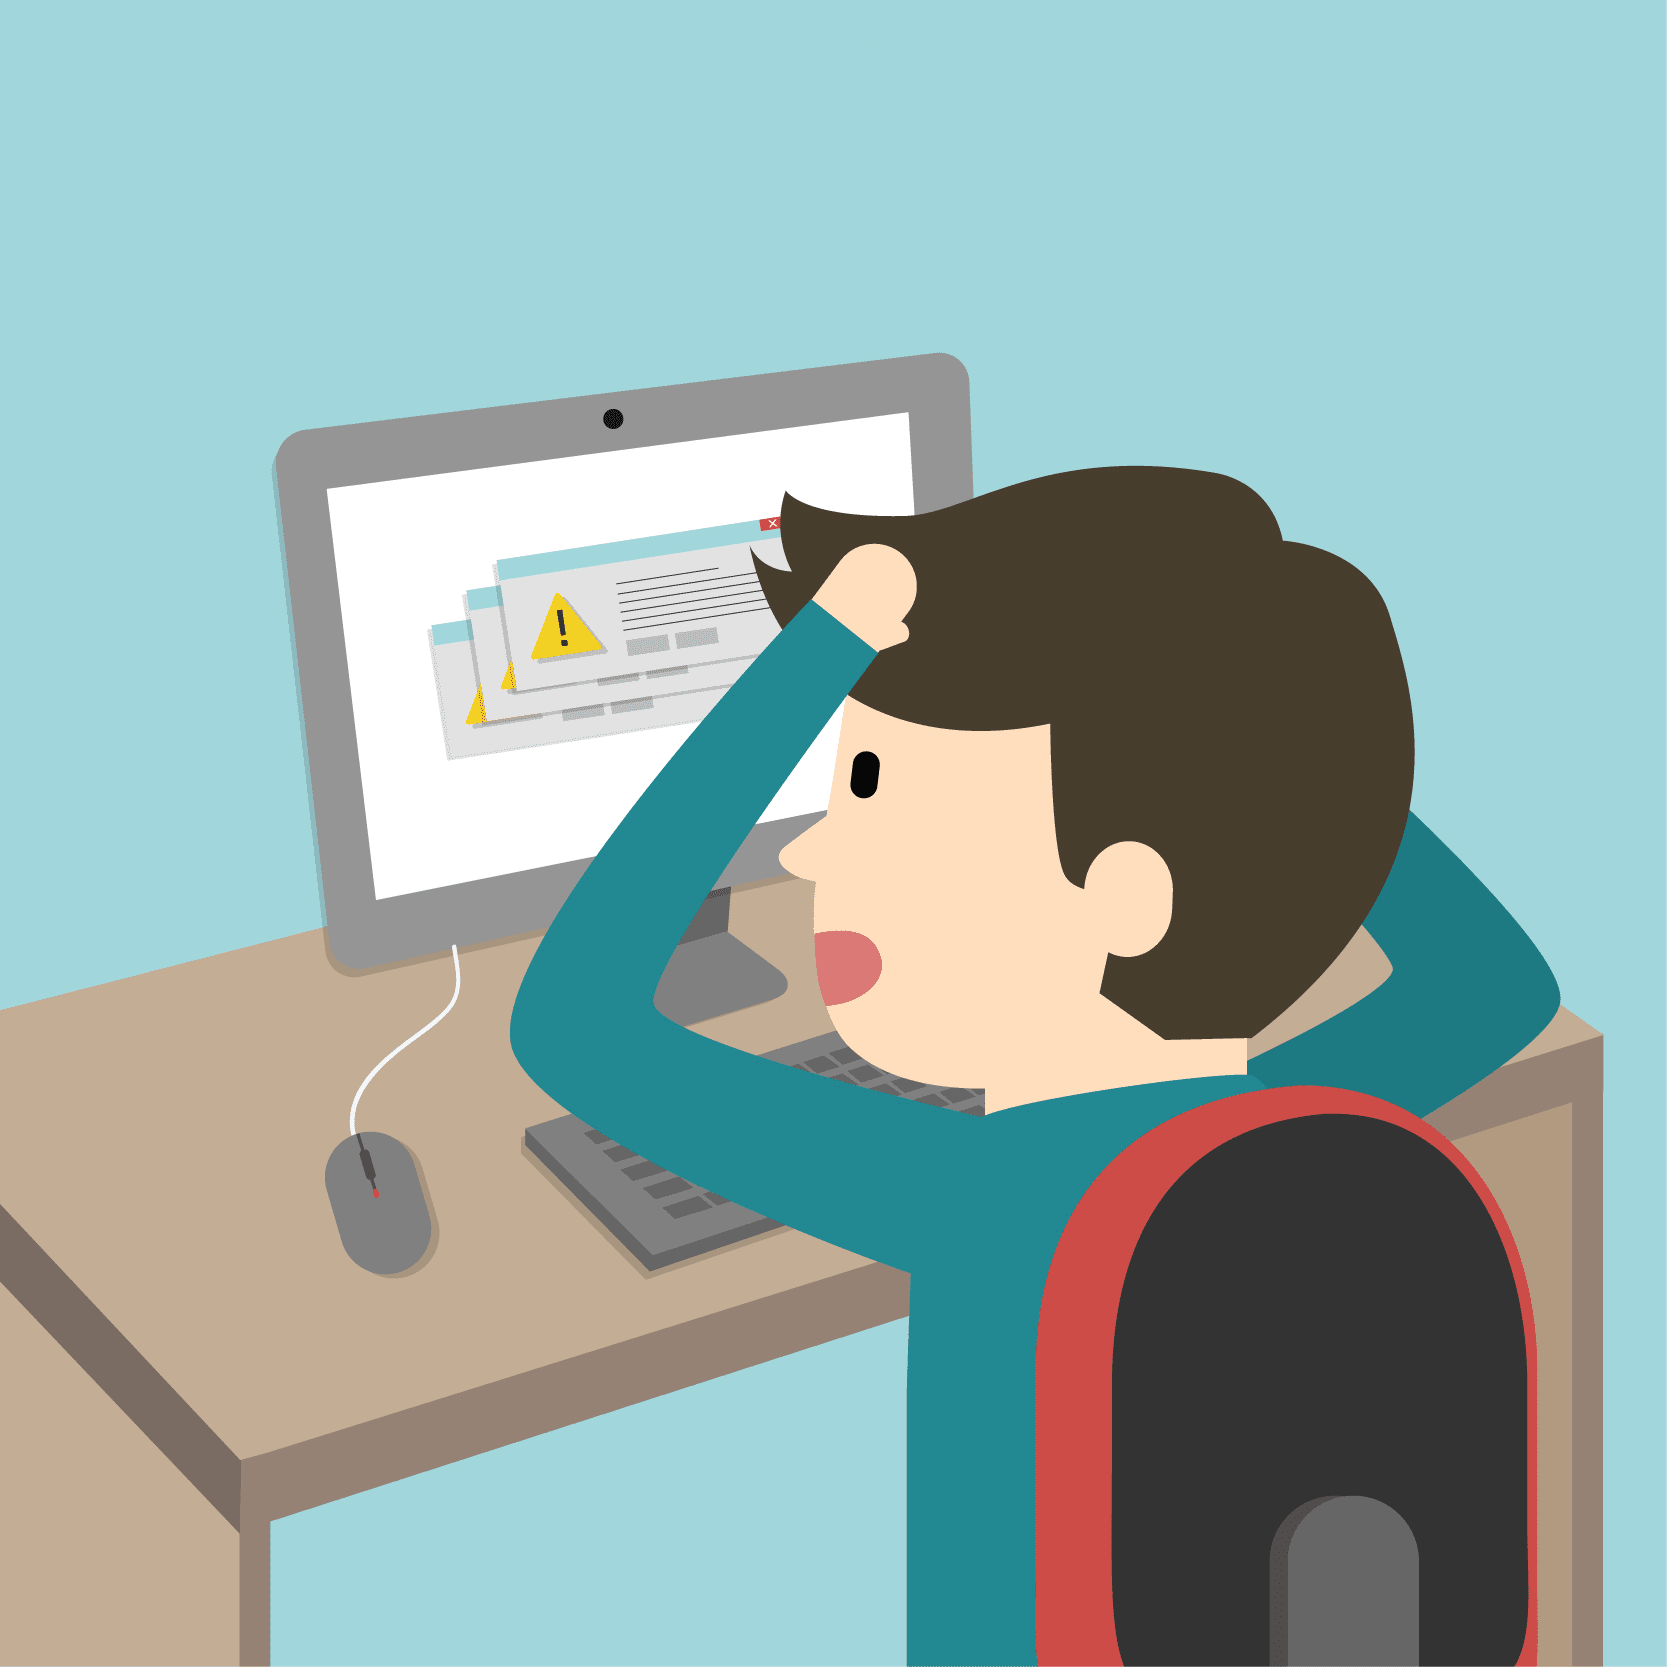 how to make cartoon pictures on the computer